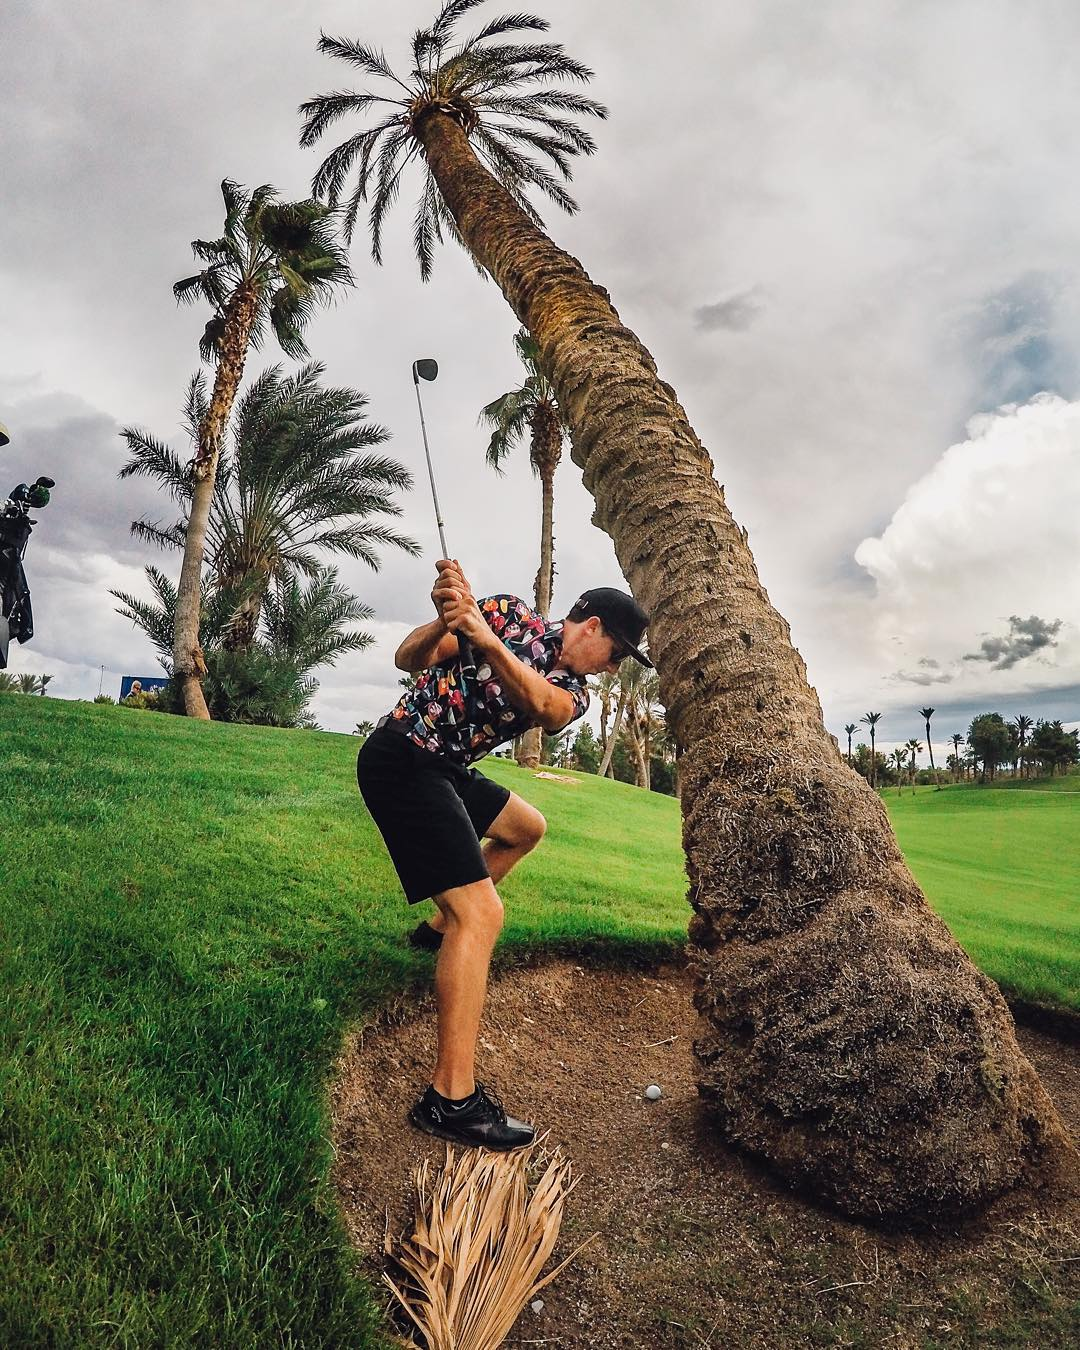 Photo of the Day! @ajvoelpel goes around the palm tree and into the cup for par at @BaliHalGC. #